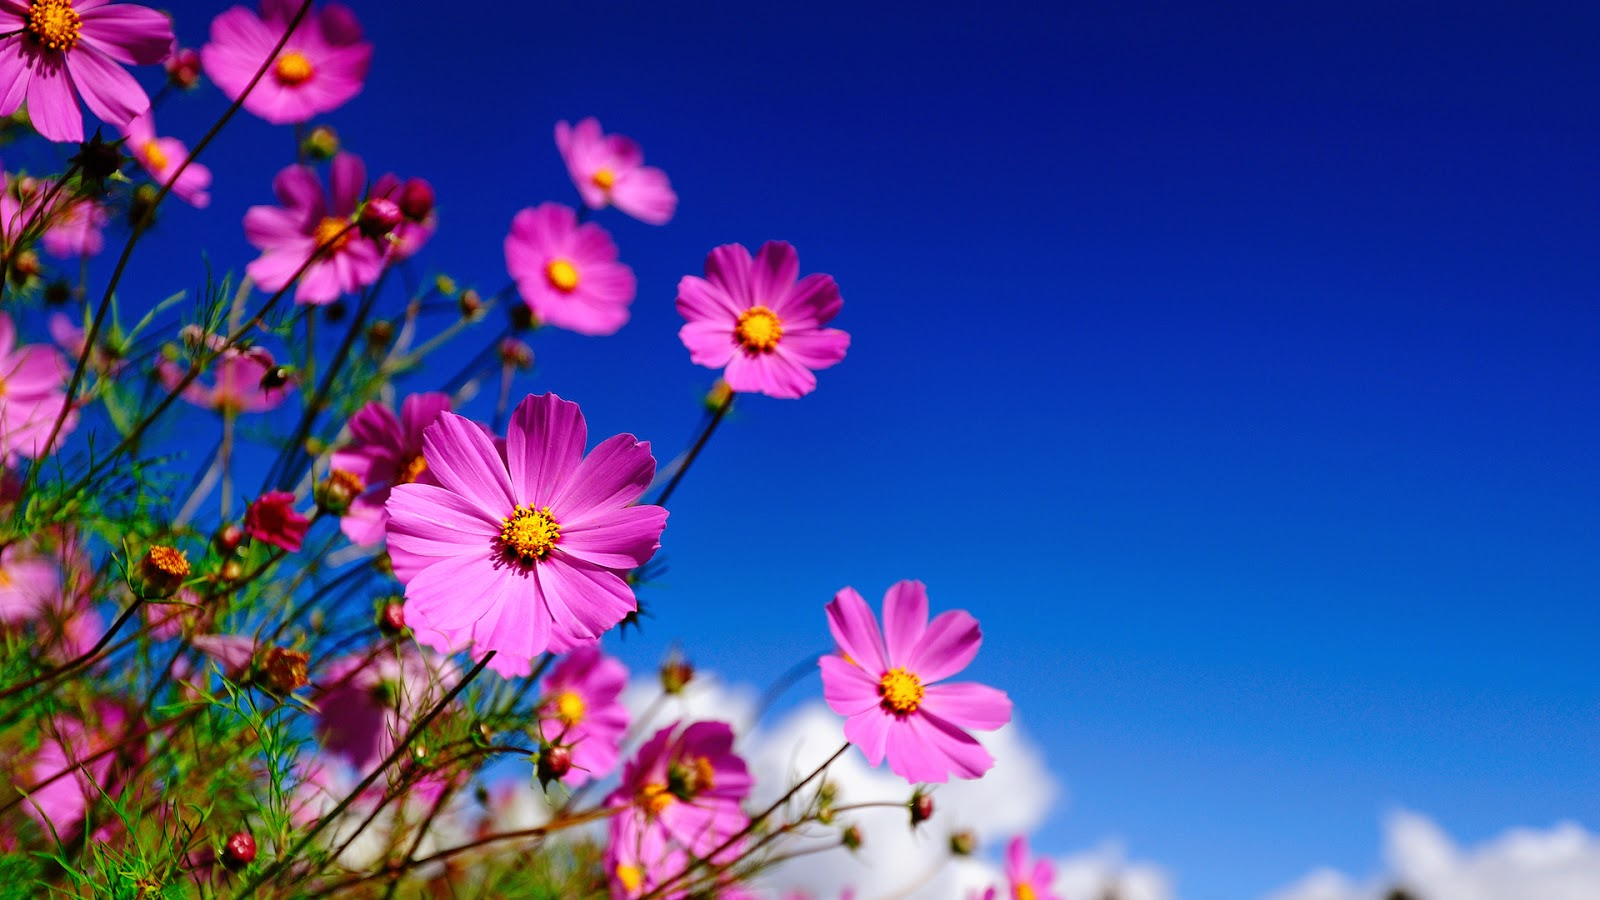 Nice Flowers Wallpaper Desktop Background Full Screen anaknulp 1600x900